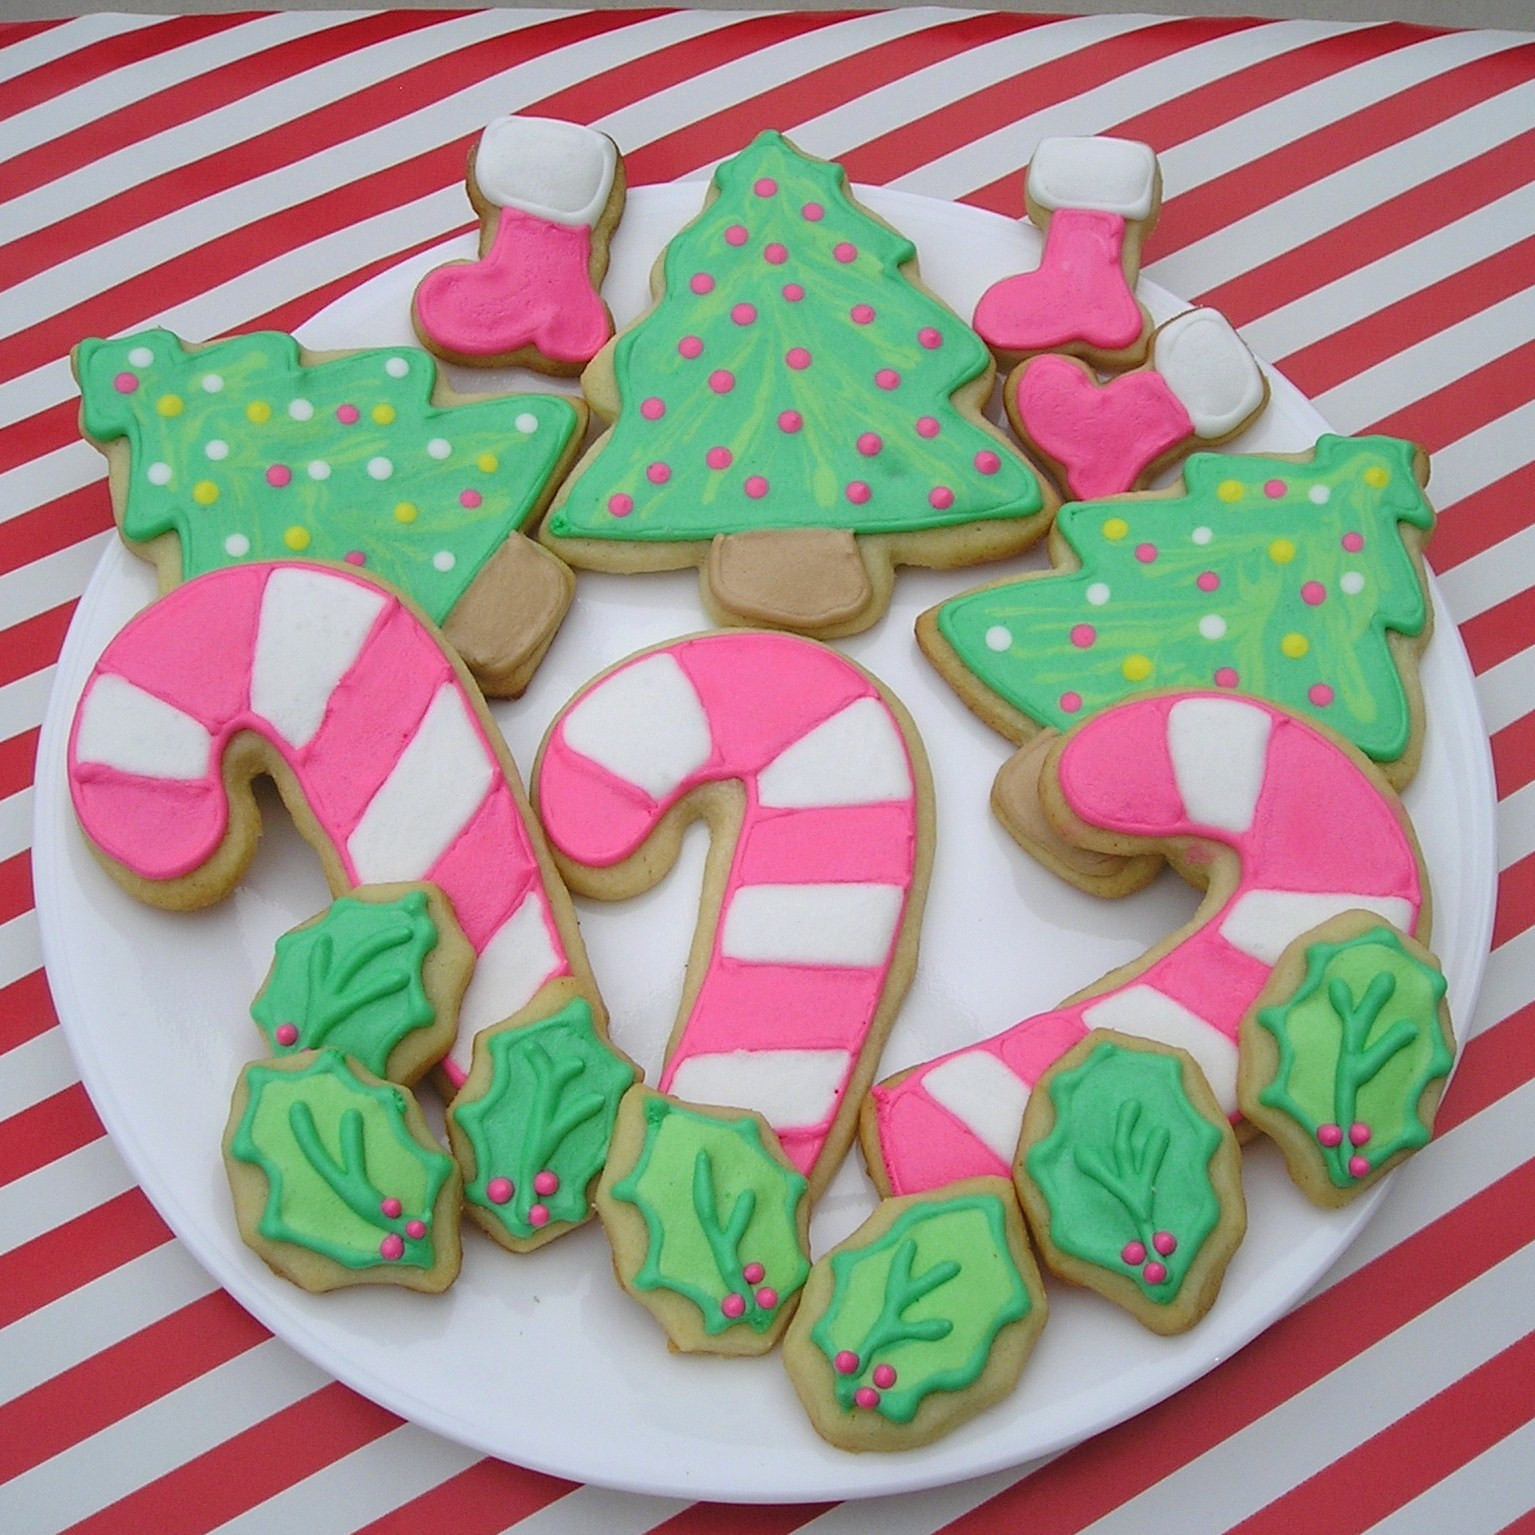 Decorated Christmas Sugar Cookies  I had so much fun decorating them I was hooked The icing